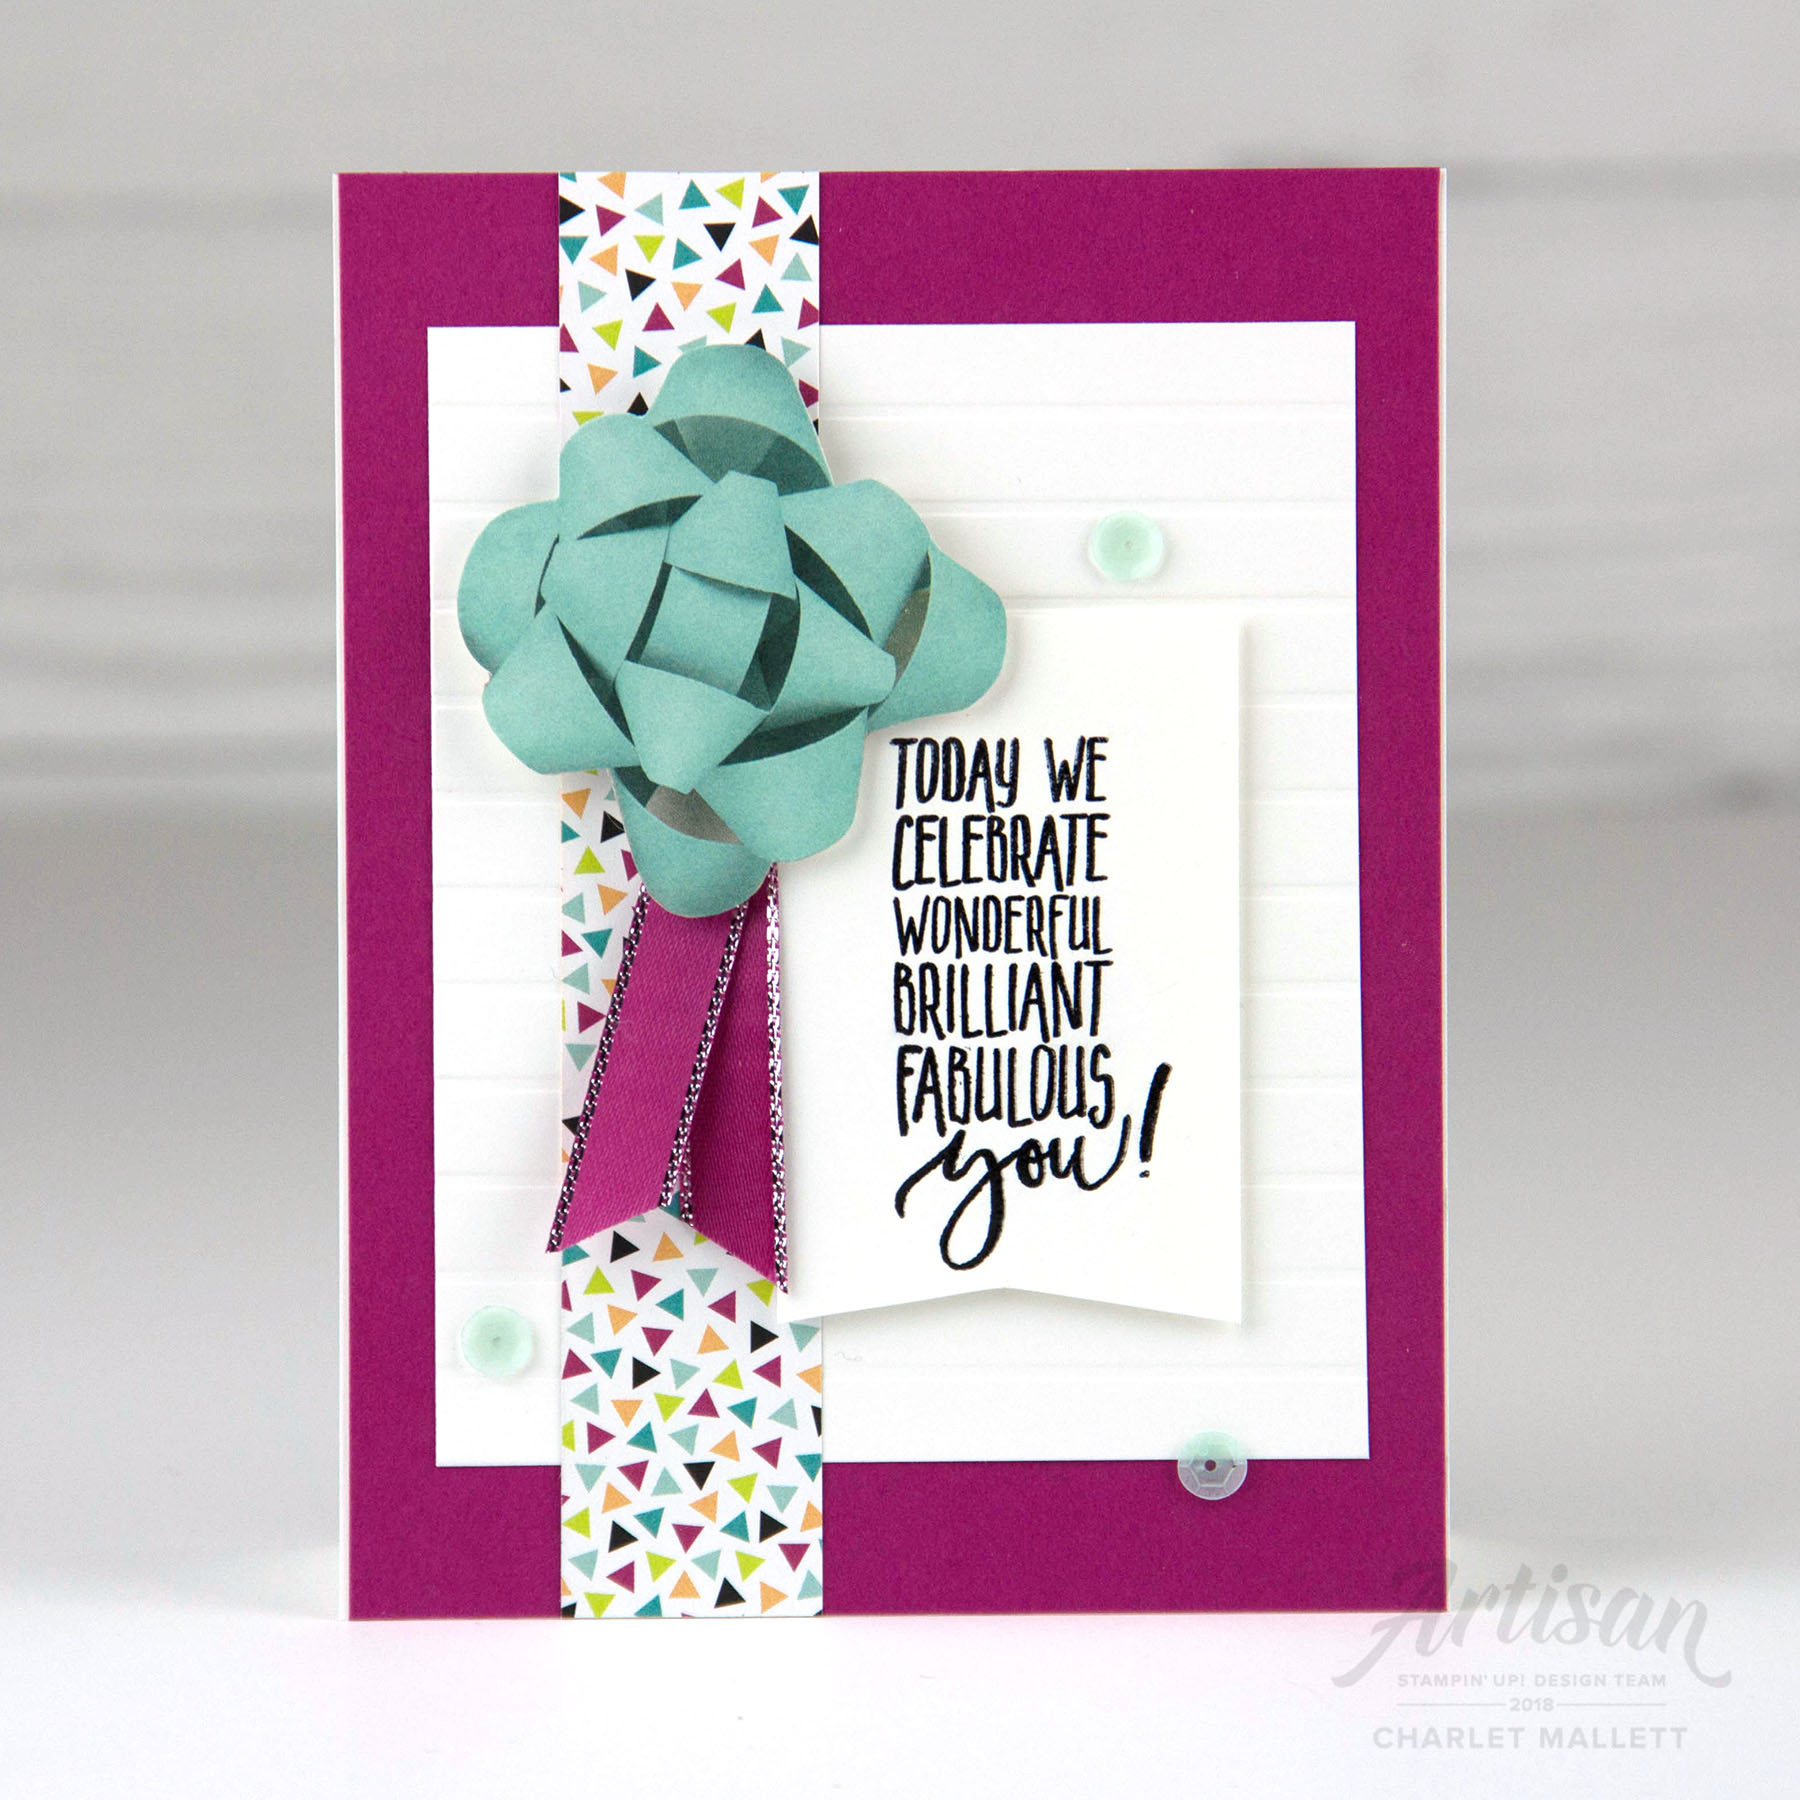 Detail view Picture Perfect Birthday Card - Charlet Mallett, Painted-Orange.com - Stampin' Up!